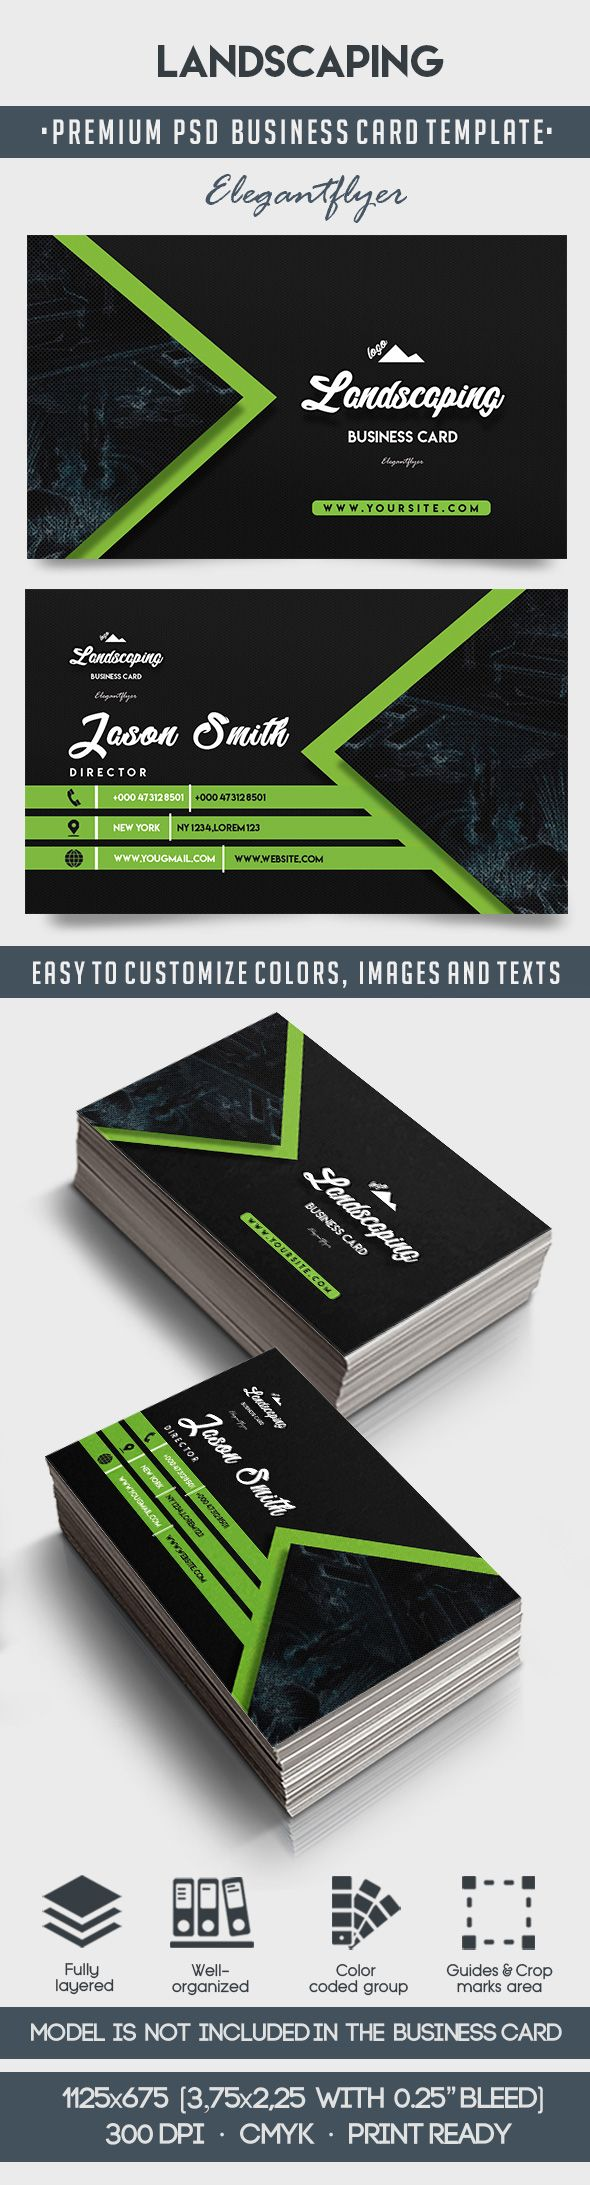 Landscaping business card templates psd by elegantflyer landscaping business card templates psd wajeb Choice Image